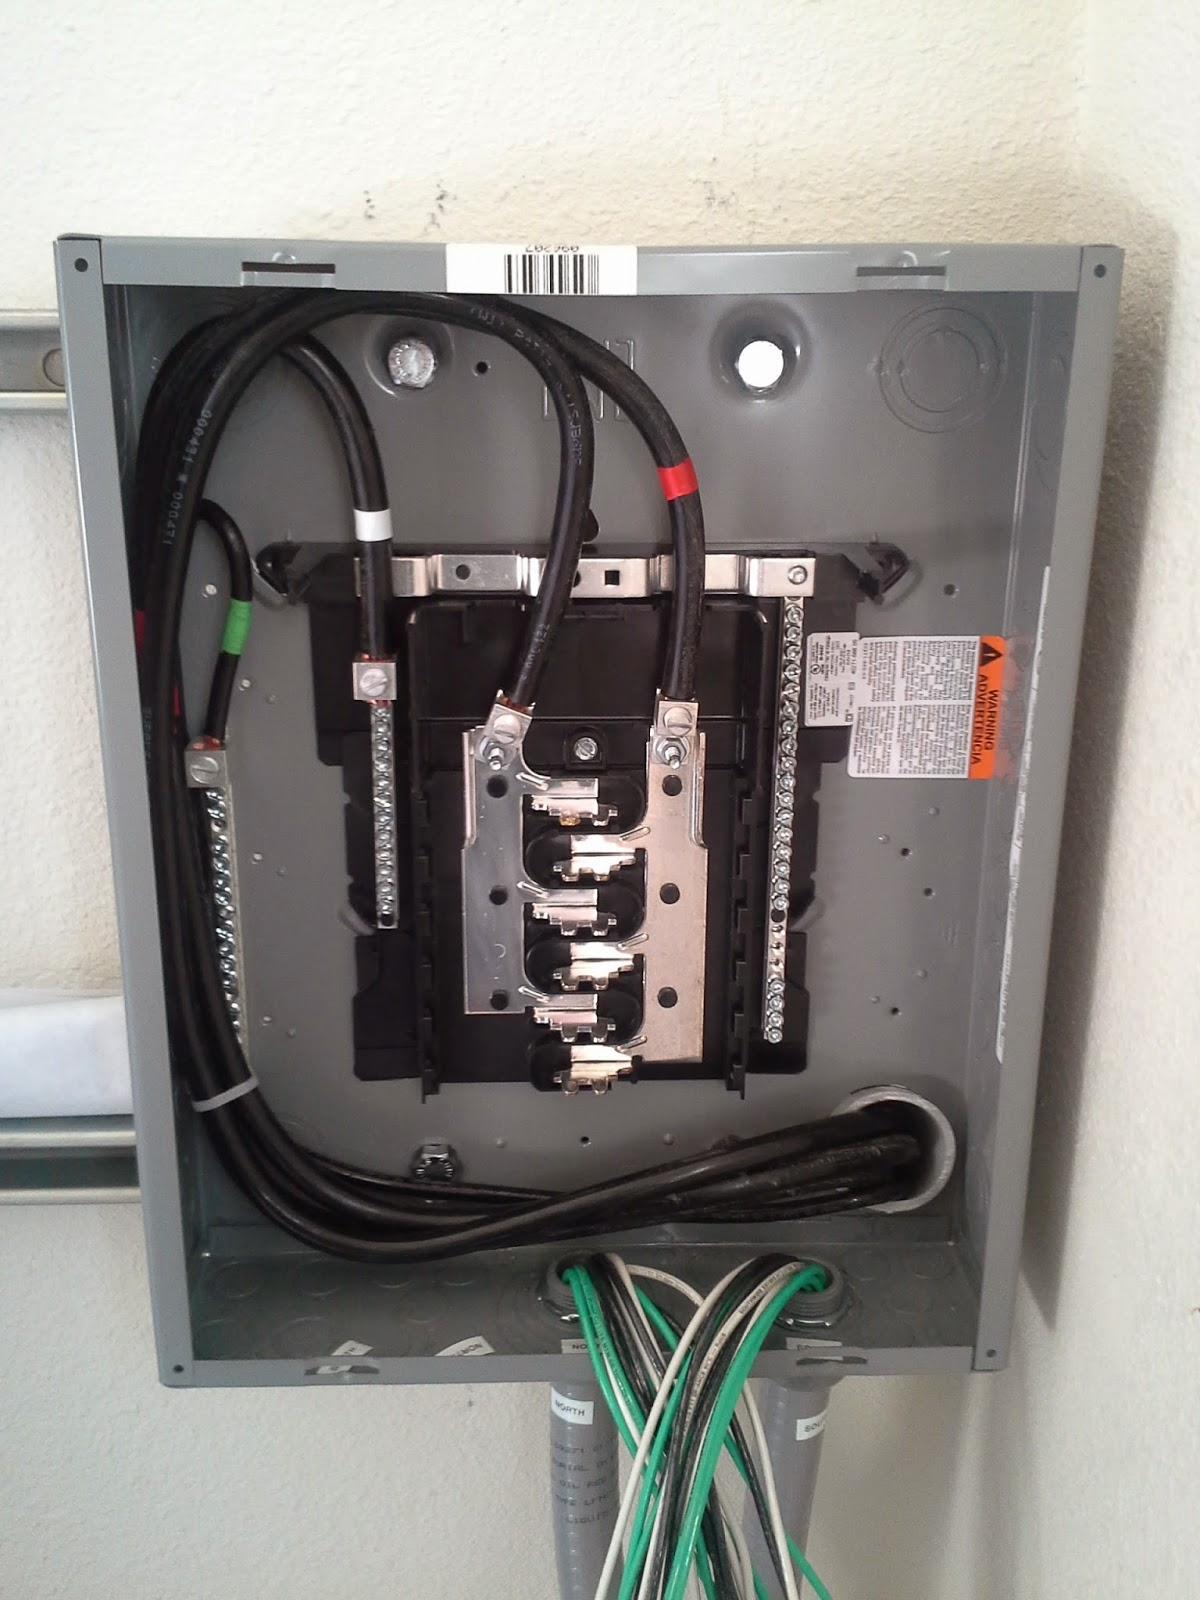 Shop Electrical Part 3 We Have The Power Viking Armory Wiring